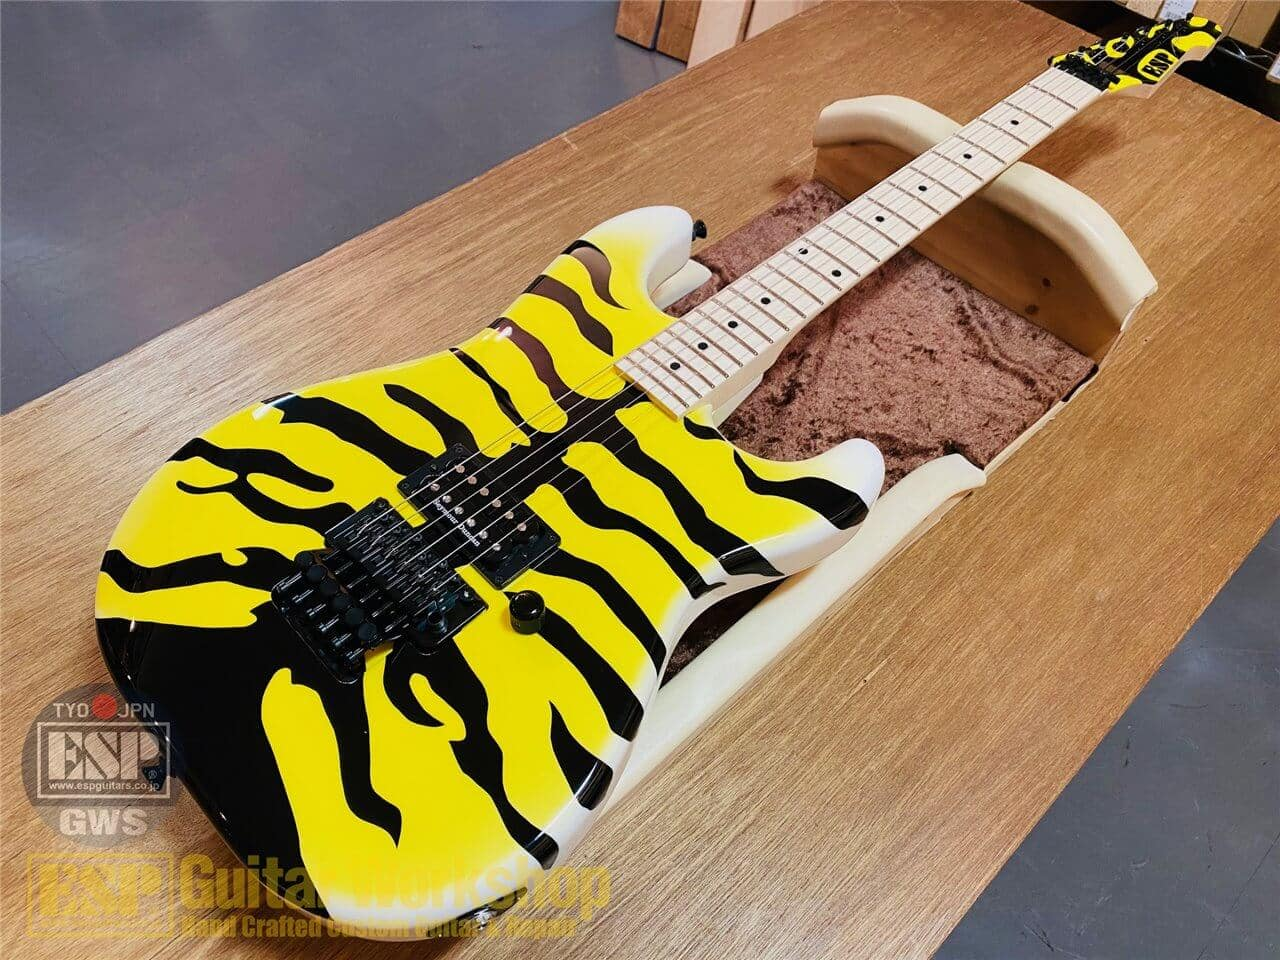 【即納可能】ESP(イーエスピー)/YELLOW TIGER/George Lynch Signature Model  GWS